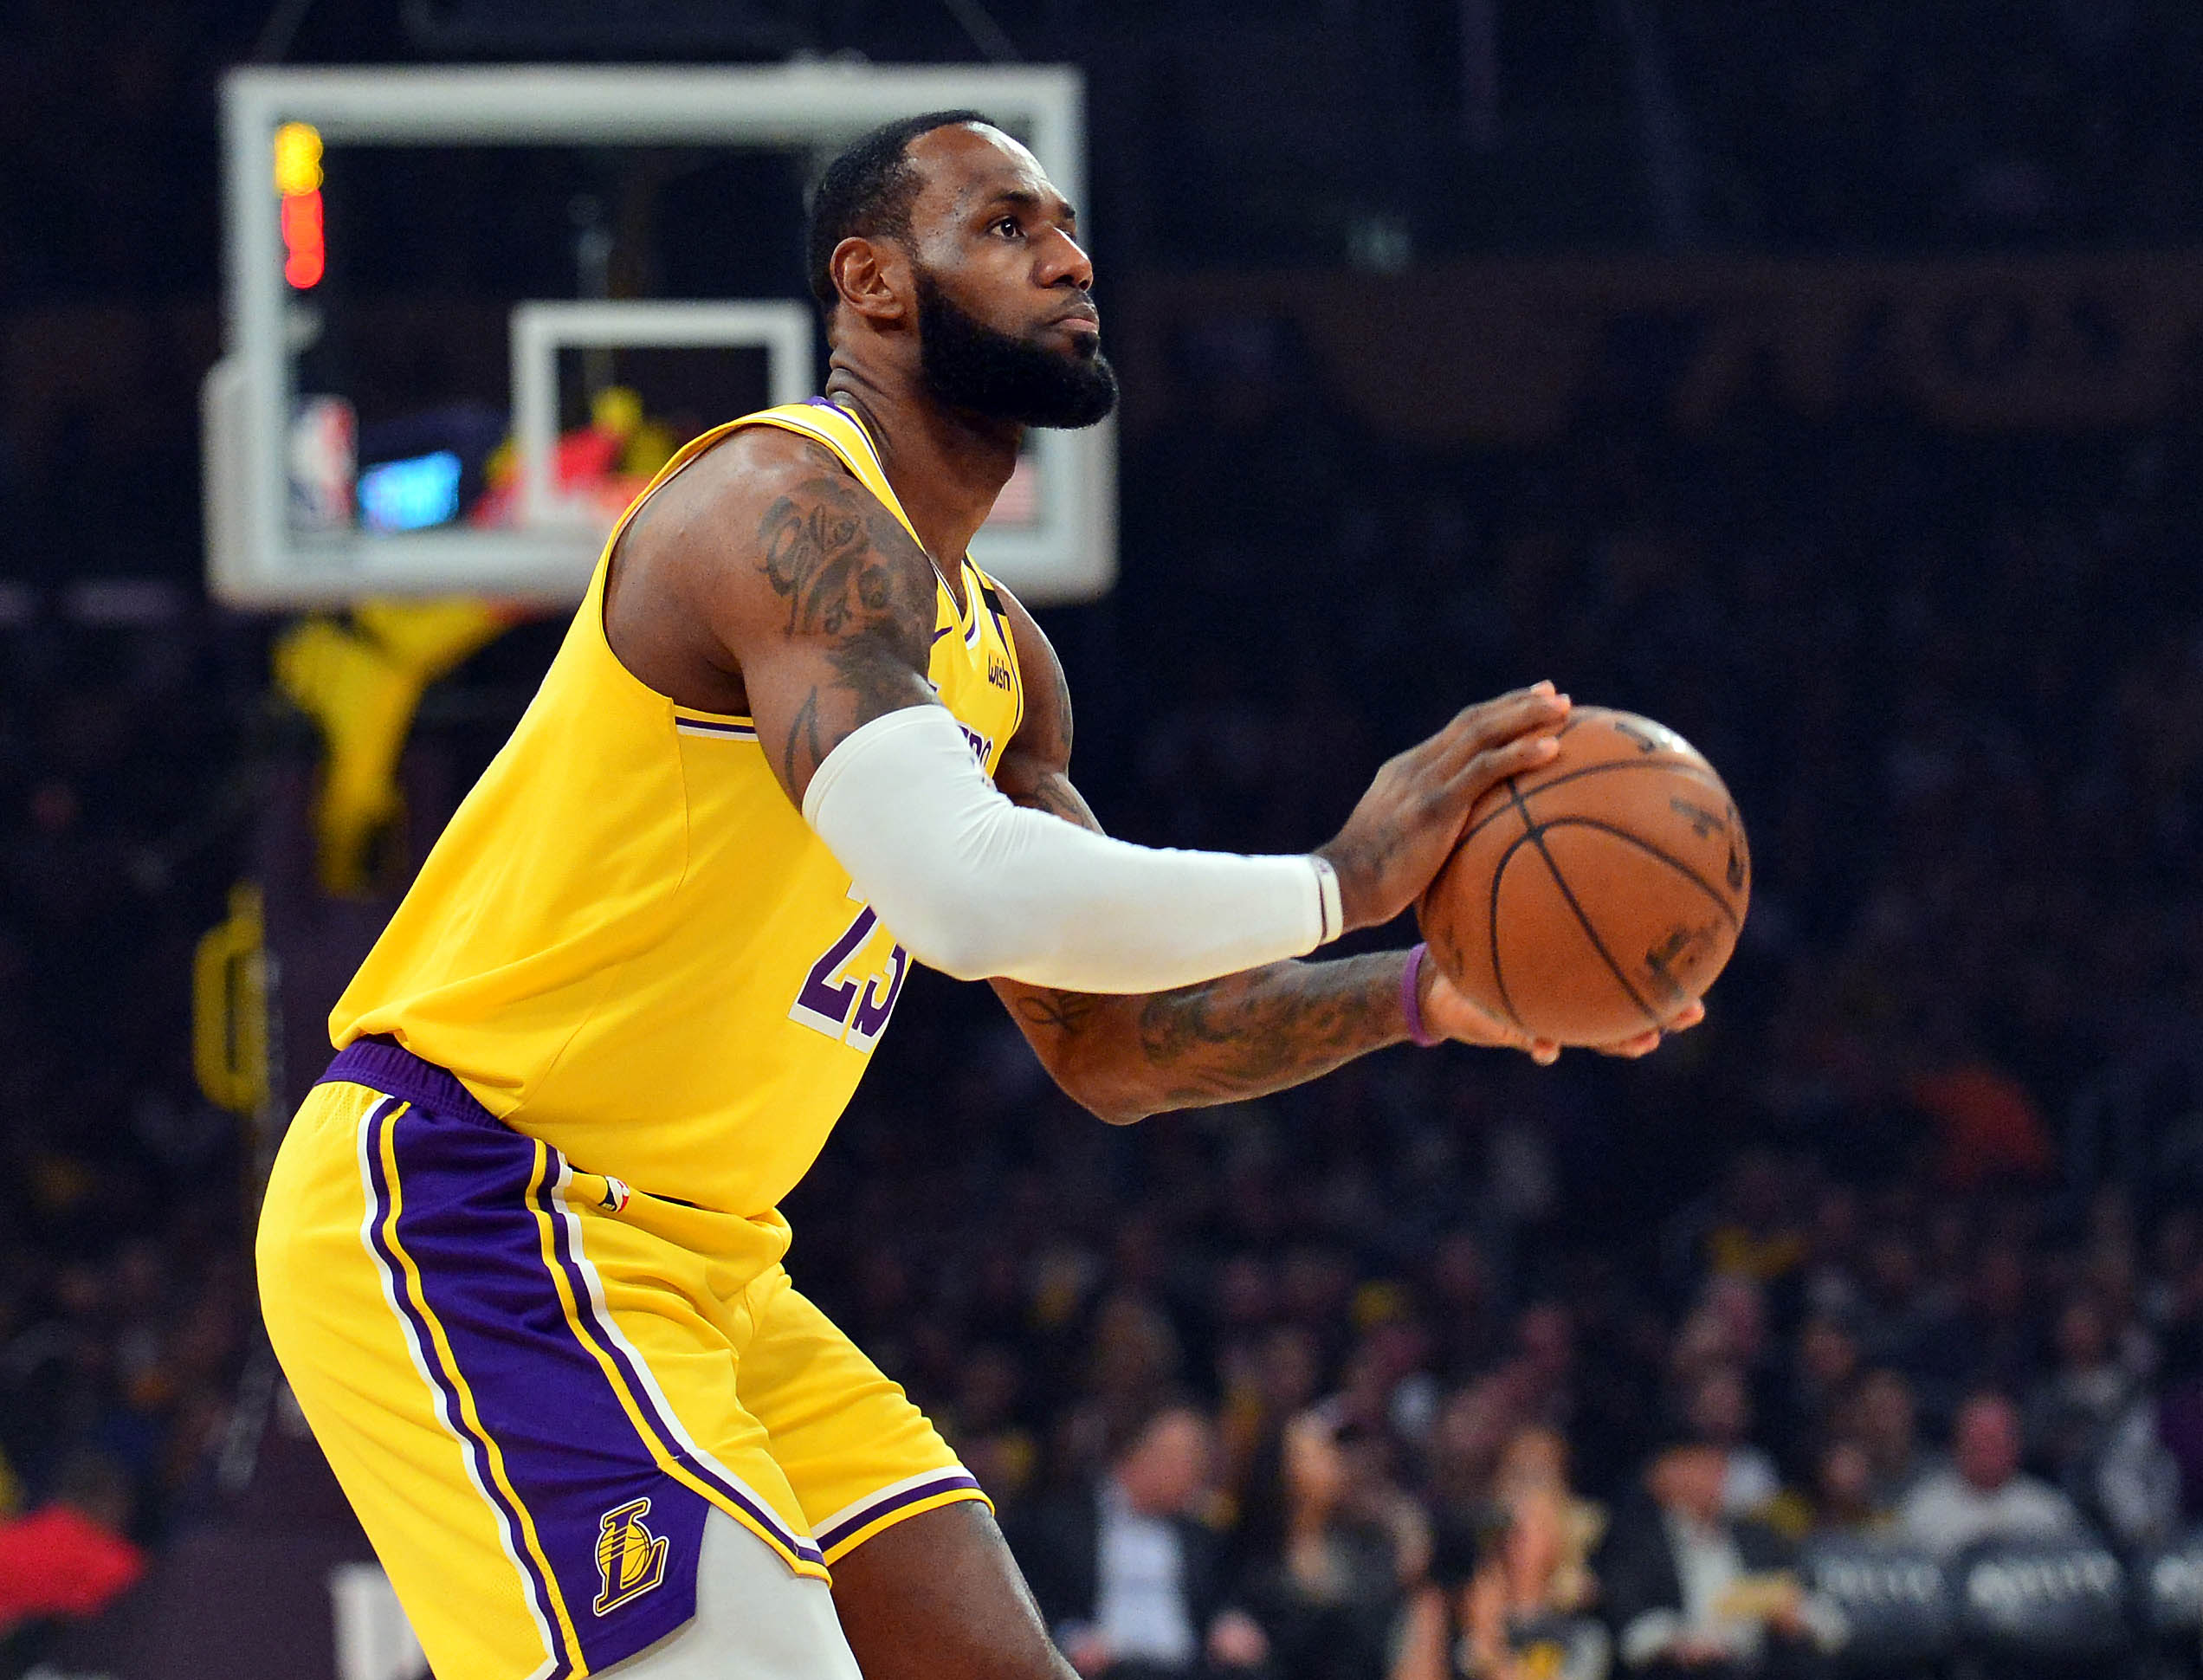 Los Angeles Lakers forward LeBron James shoots against the Phoenix Suns during the first half at Staples Center.